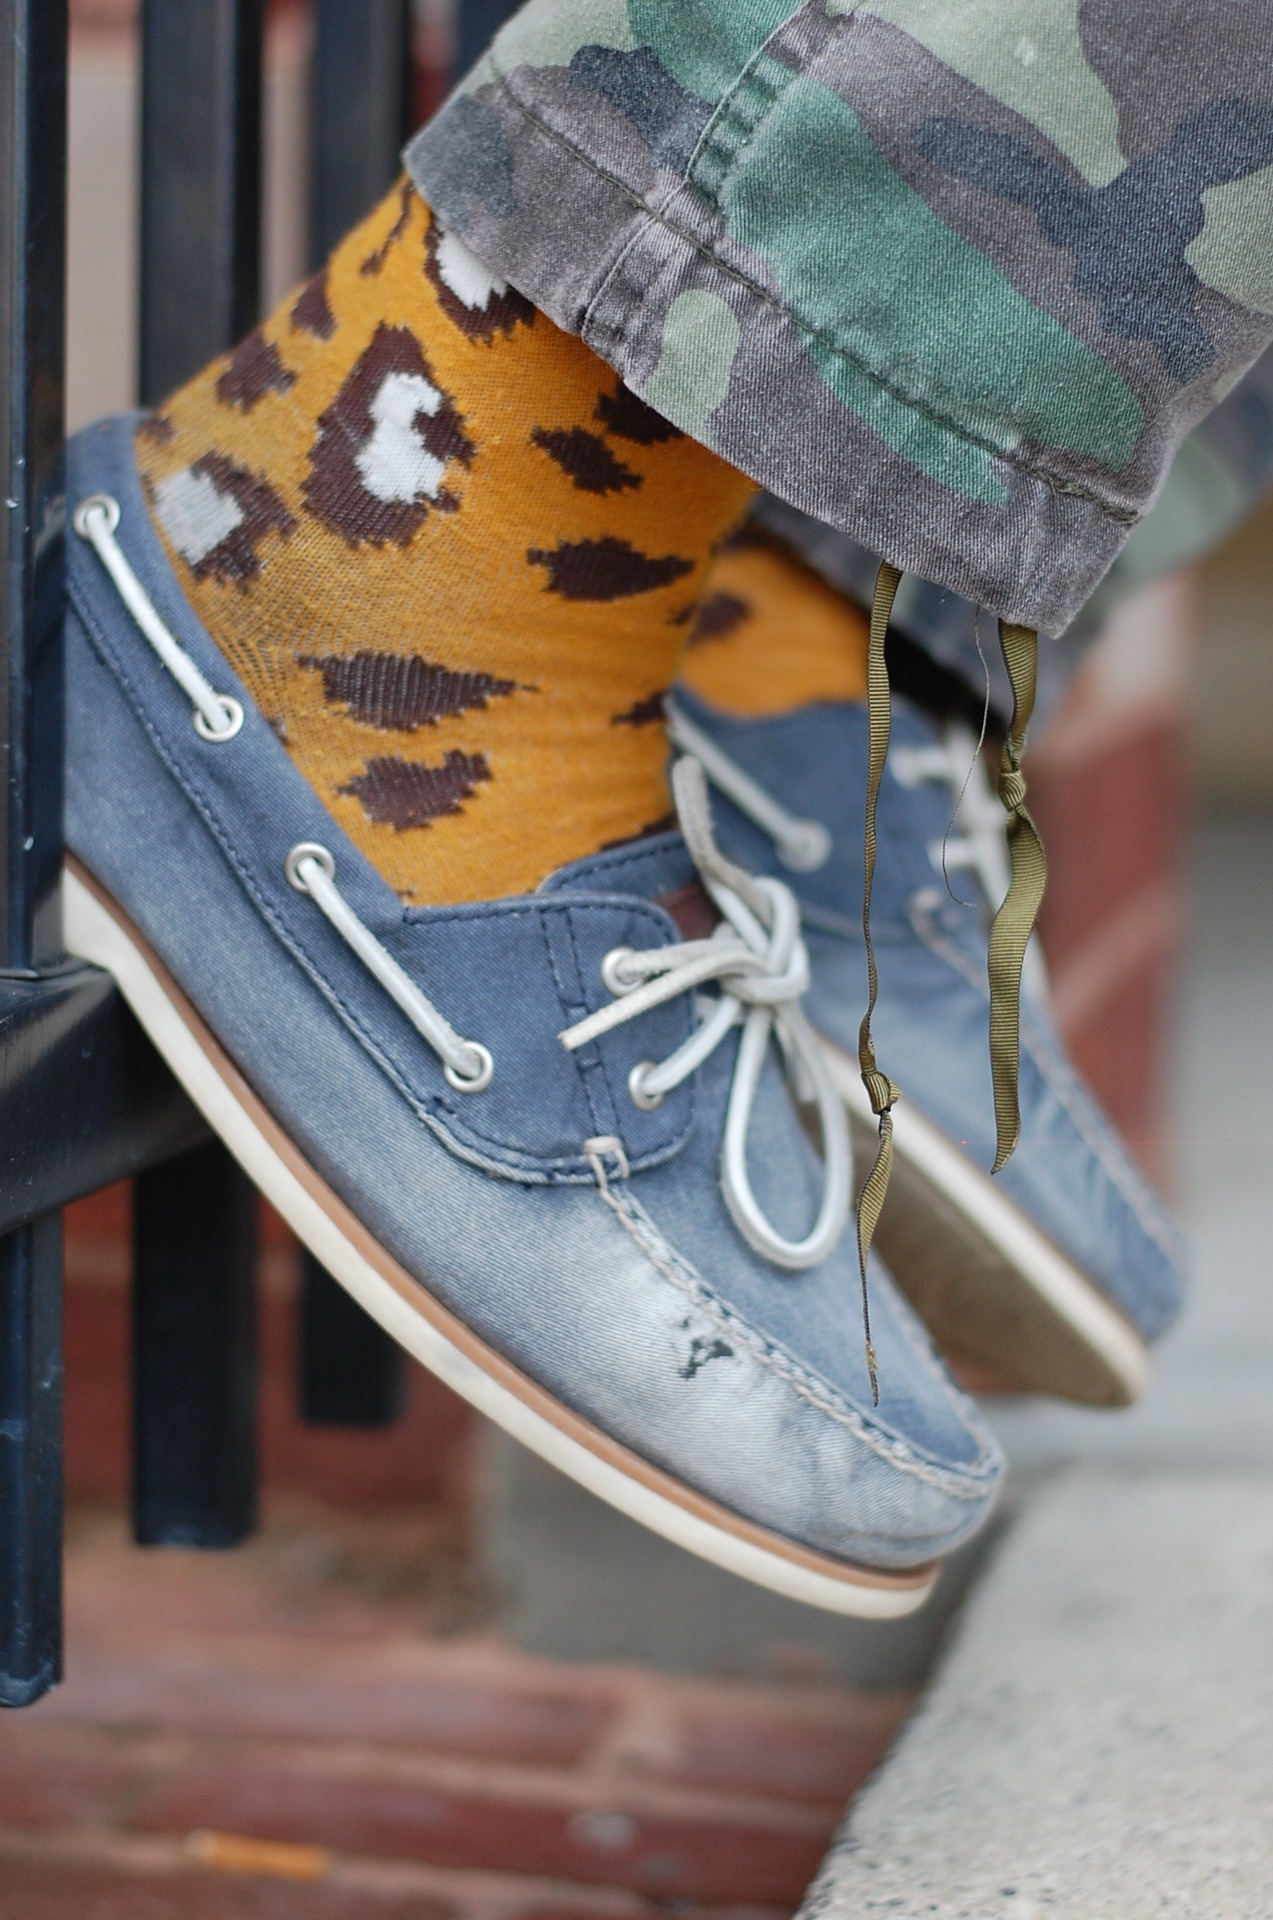 i really love funky socks like this. gives a whole new meaning to dressing casual and cool. my type of style.